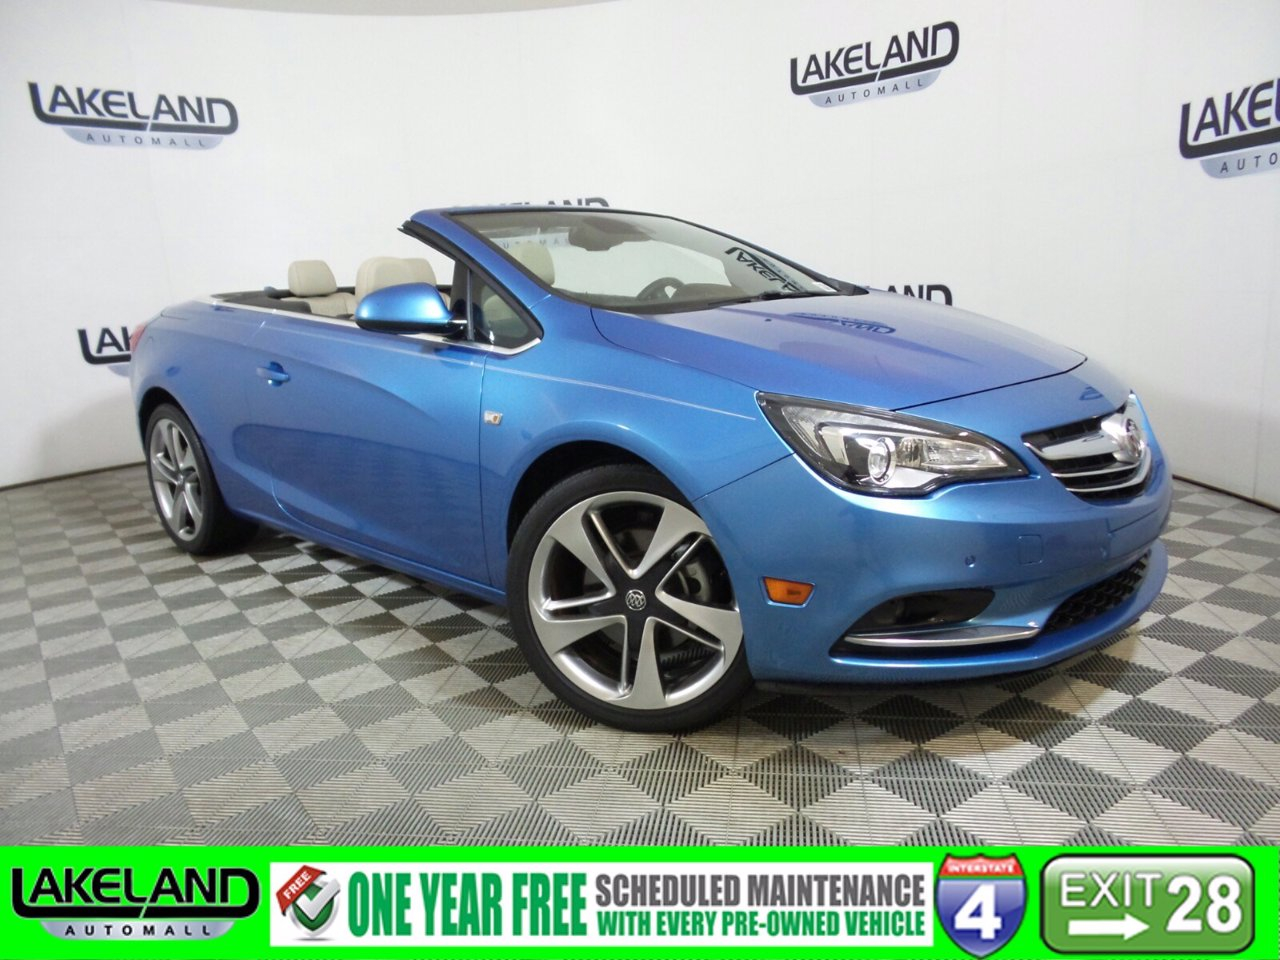 2017 Buick Cascada Sport Touring W04Wj3N51Hg029369 2021 Buick Cascada Inventory, Images, Incentives